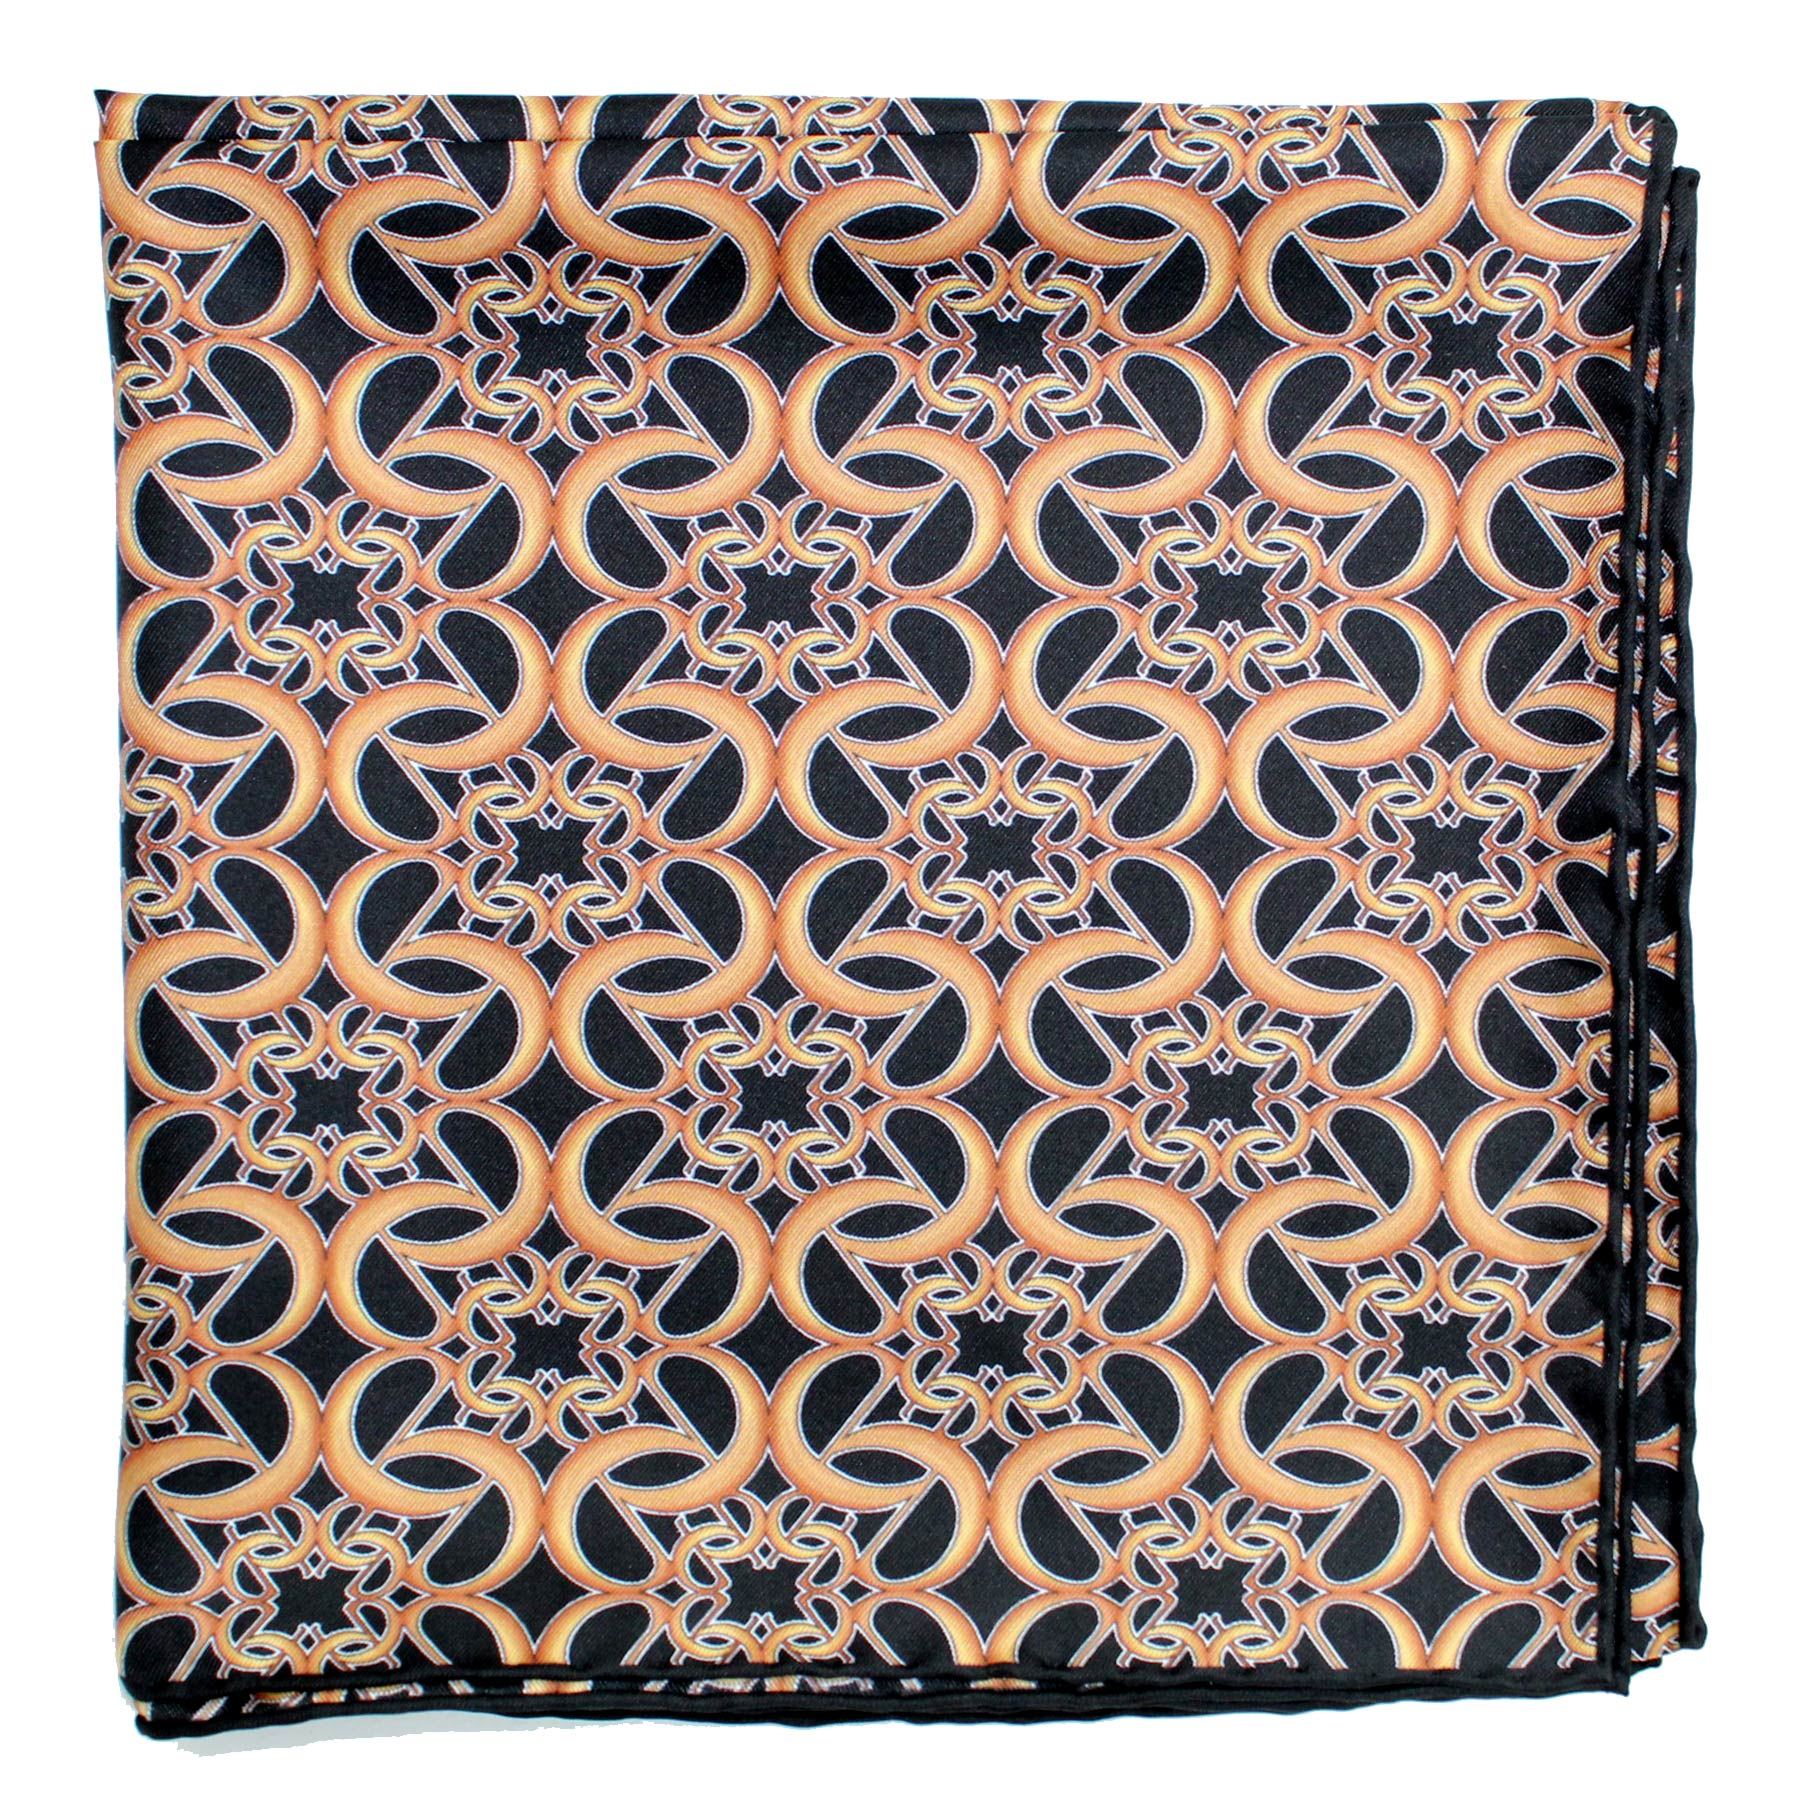 Elie Saab Scarf Black Brown-Gold - Large Twill Silk Square Scarf FINAL SALE